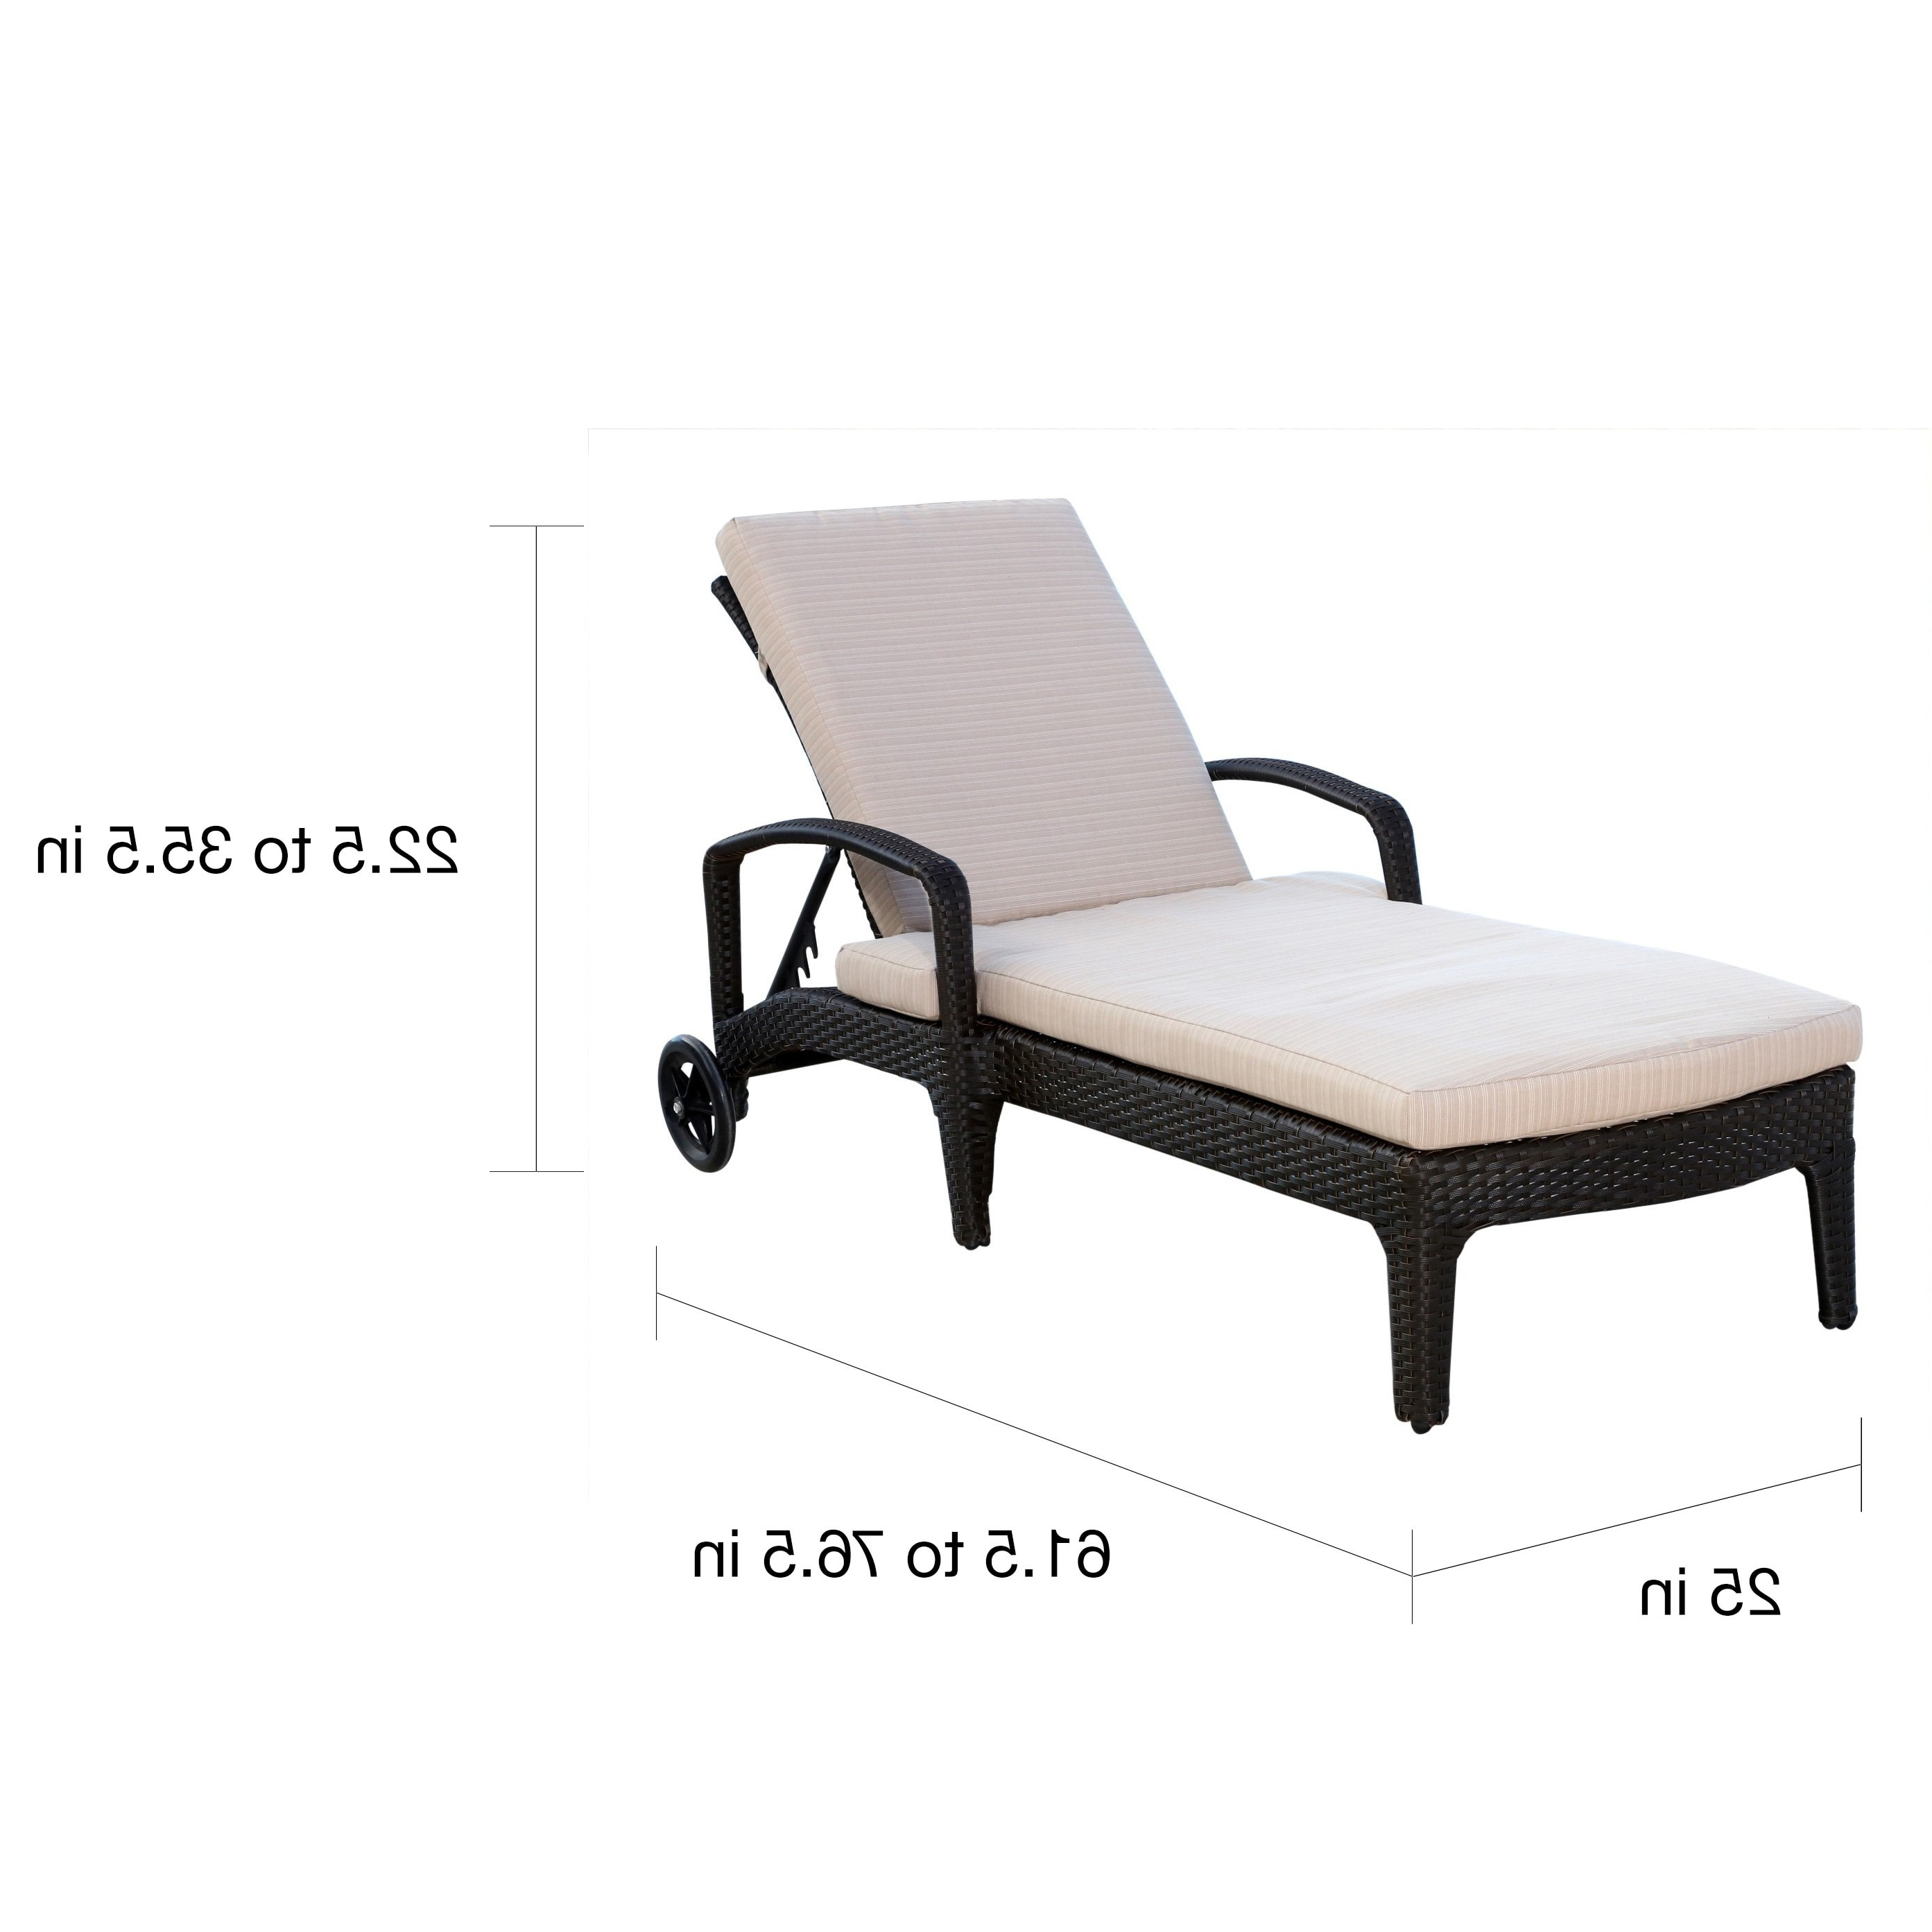 Abbyson Newport Outdoor Wicker Chaise Lounge – Free Shipping Today Pertaining To Best And Newest Newport Chaise Lounge Chairs (View 10 of 15)